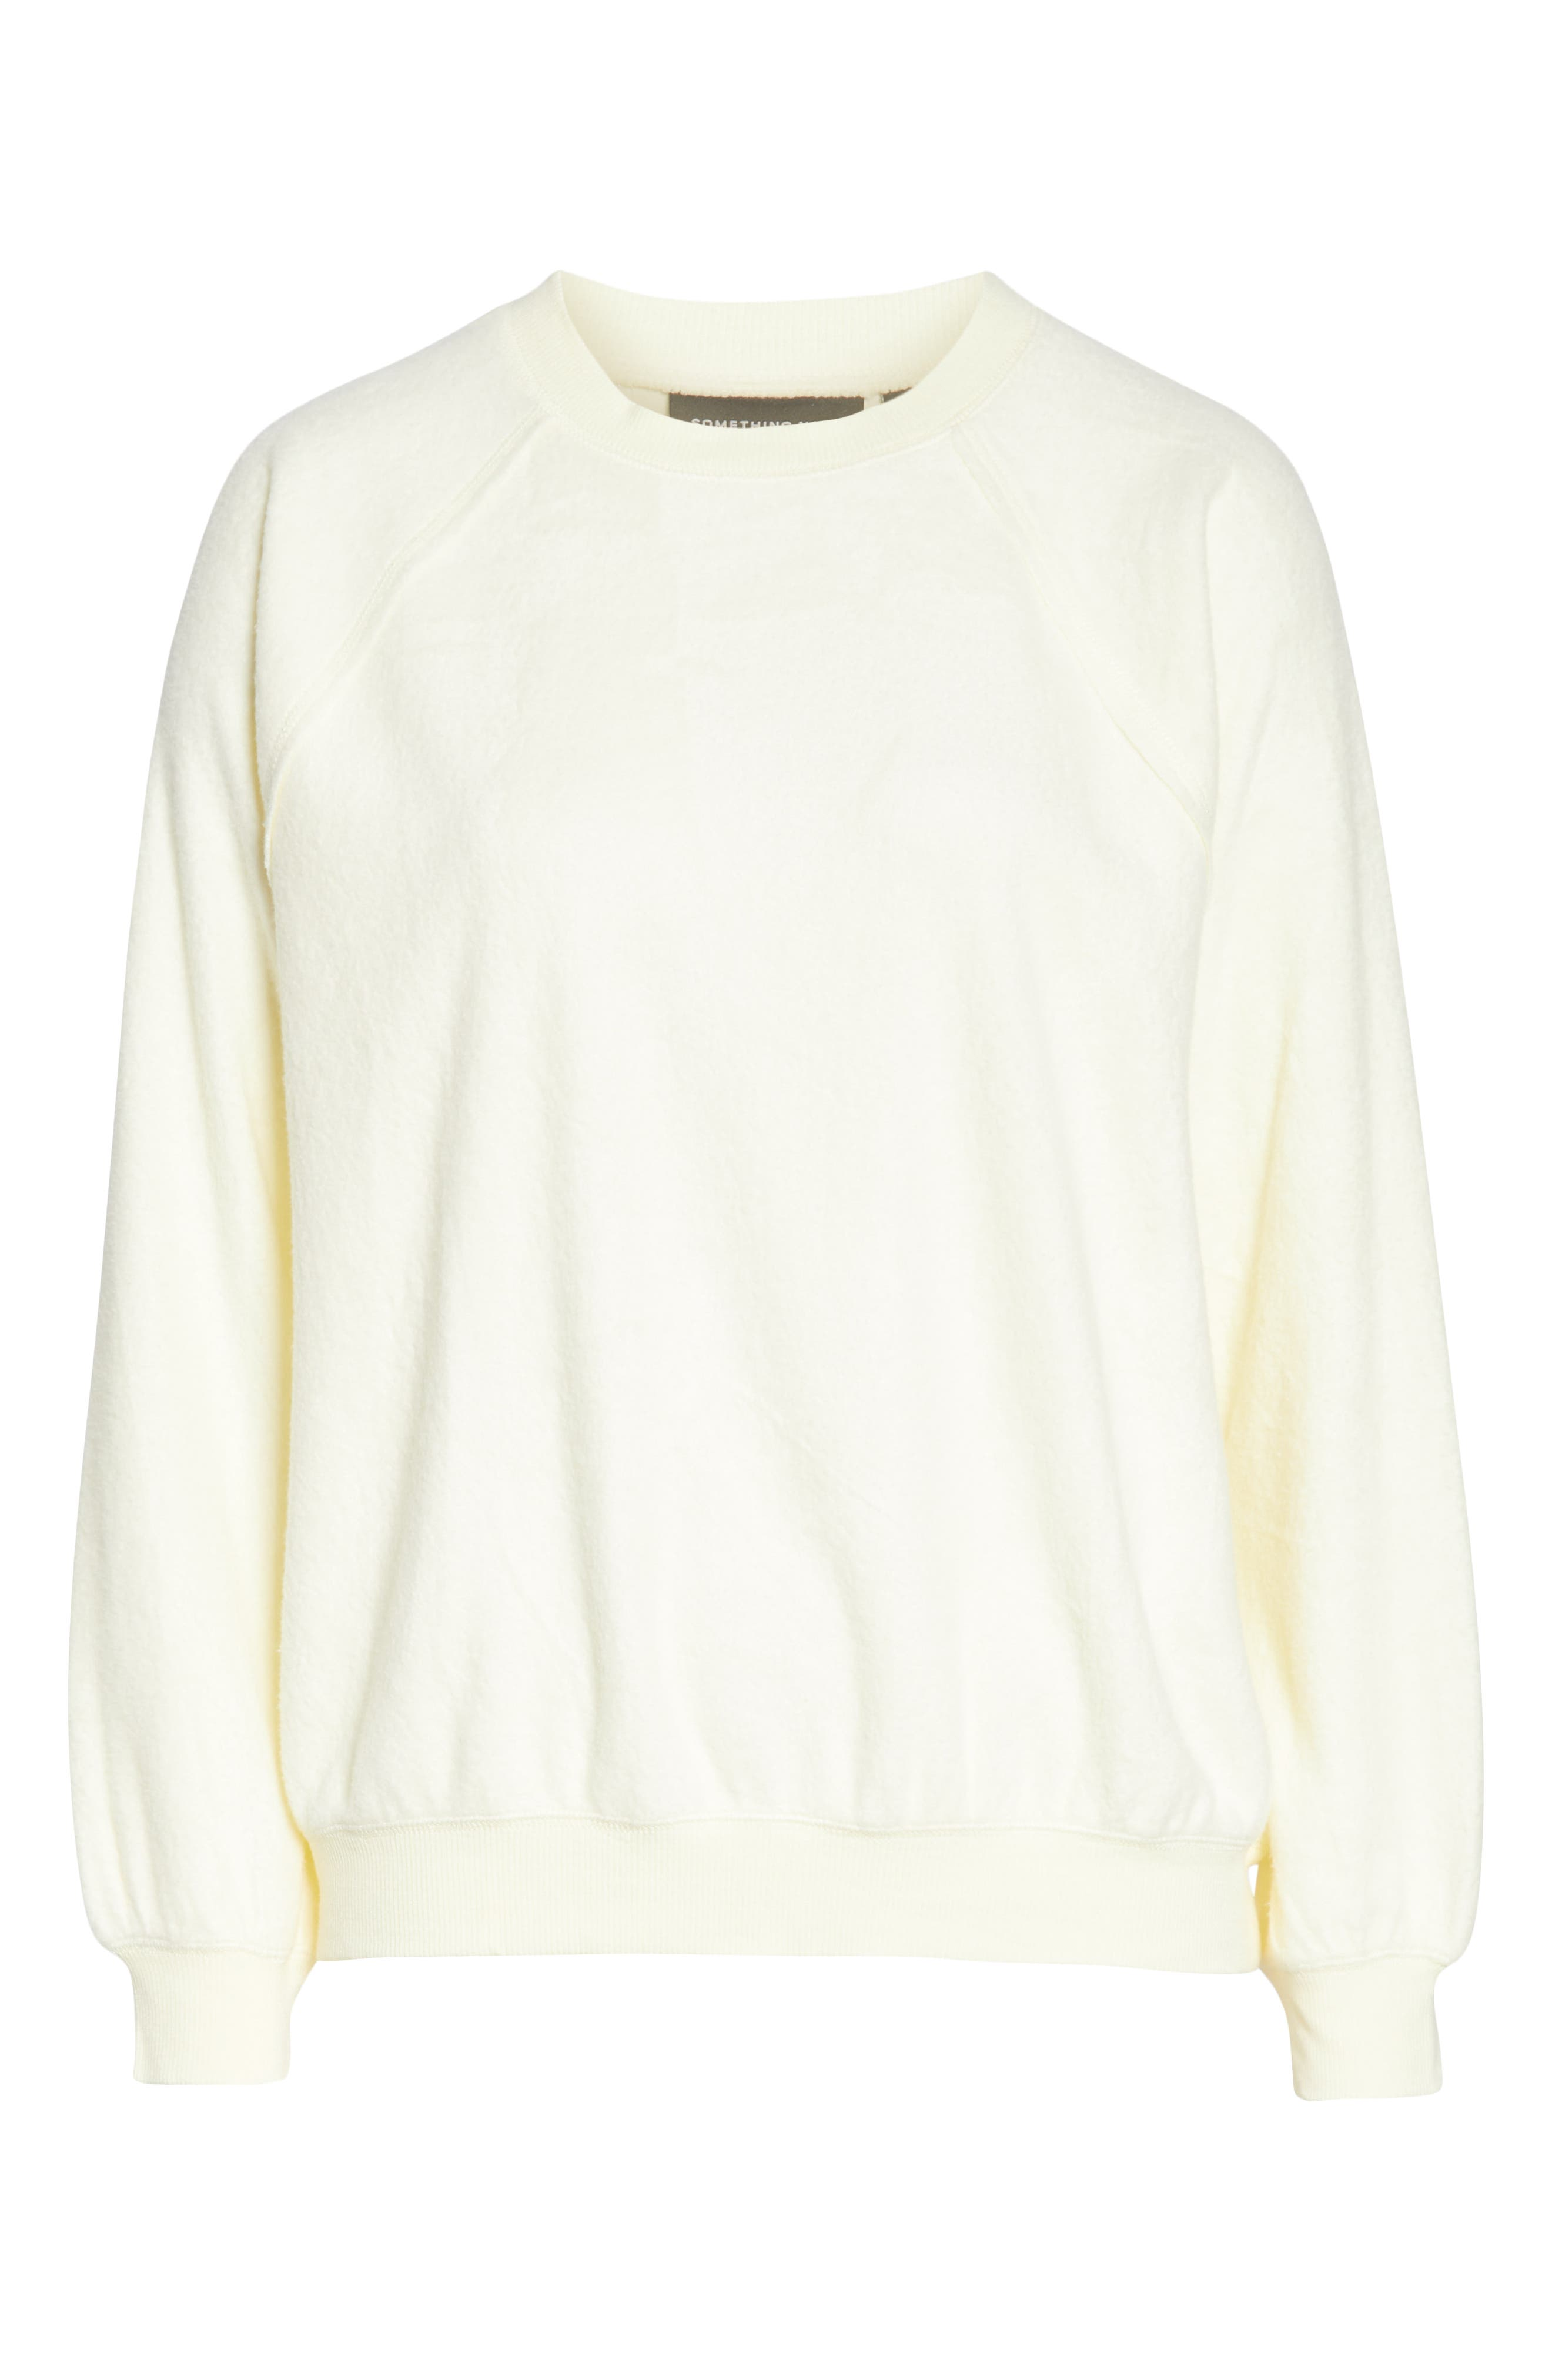 SOMETHING NAVY, Batwing Fleece Pullover, Alternate thumbnail 7, color, YELLOW FROST